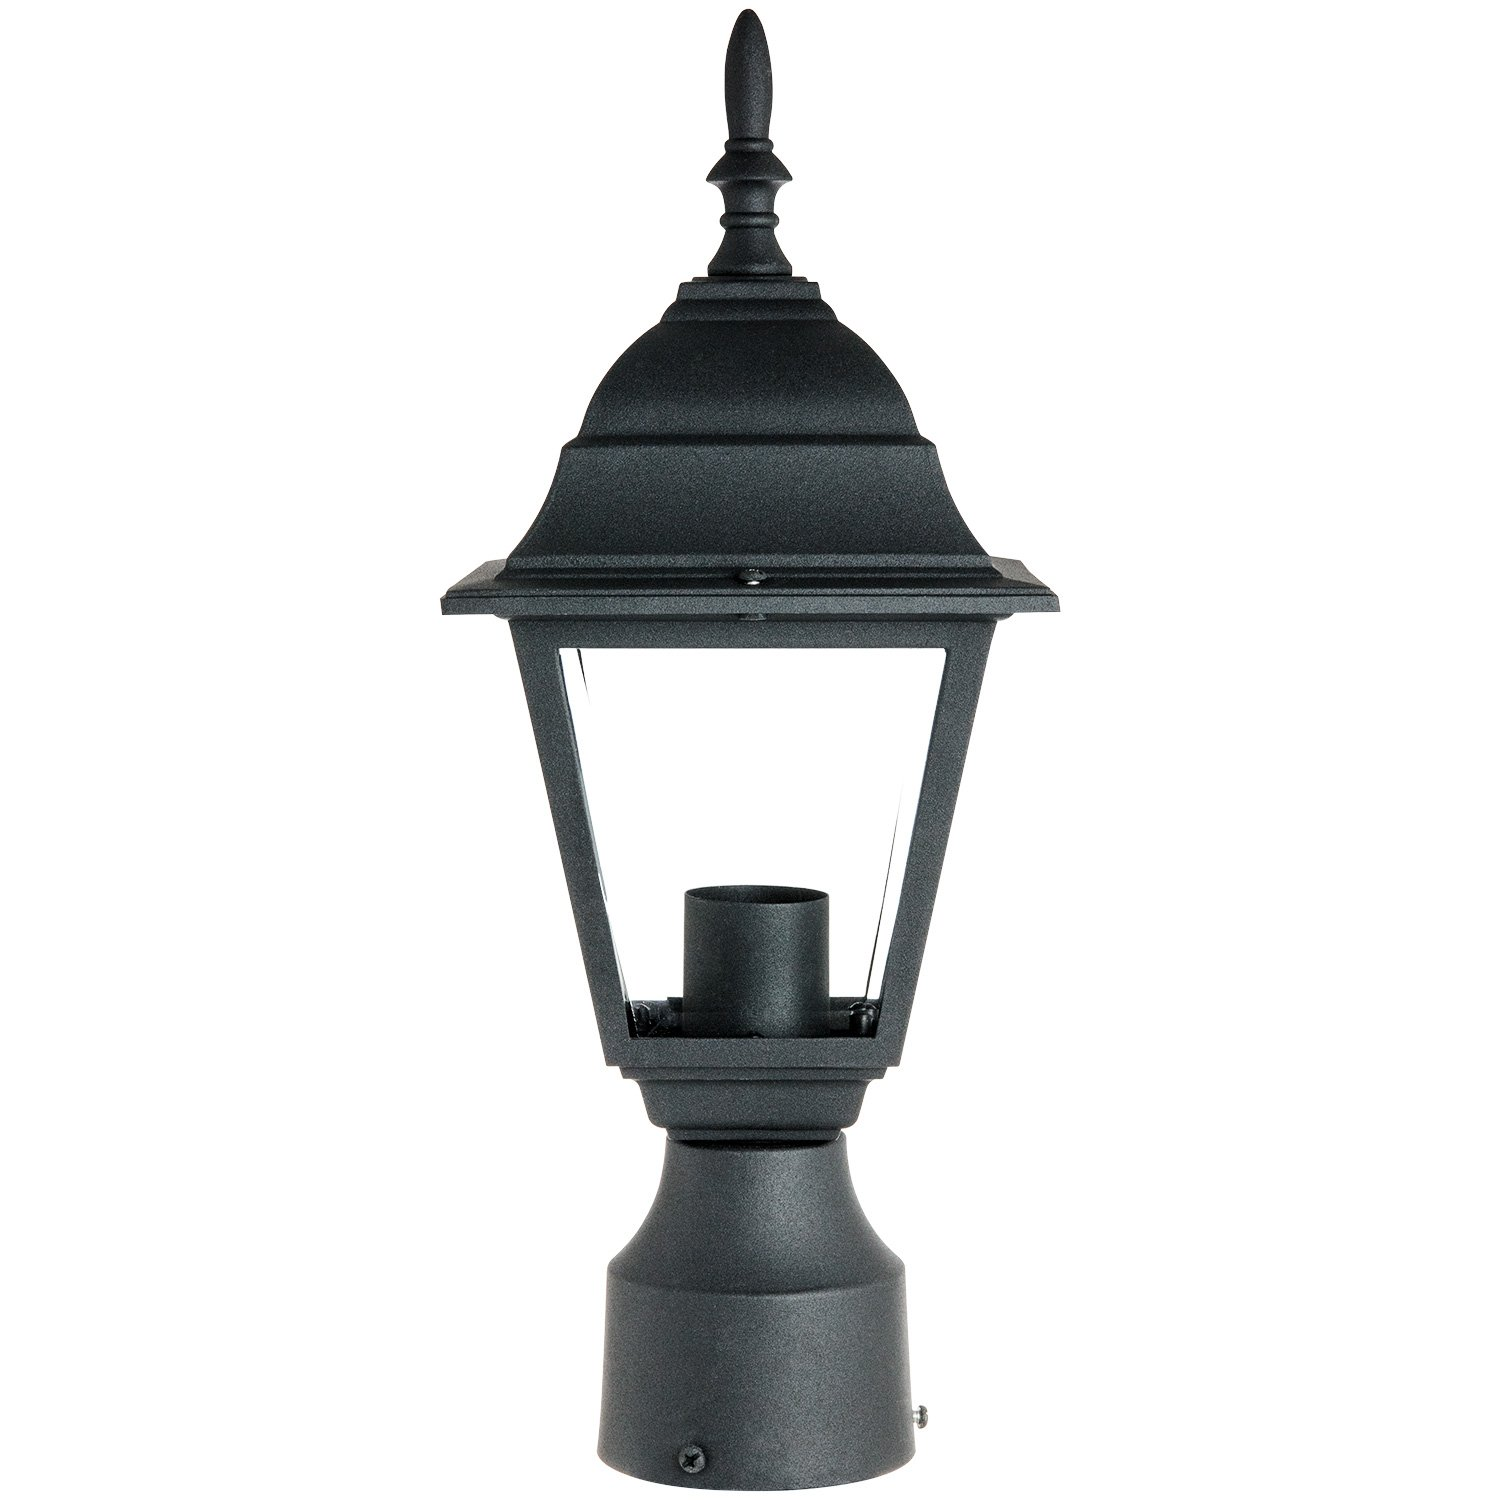 Sunlite odi1150 15 inch decorative light post outdoor fixture sunlite odi1150 15 inch decorative light post outdoor fixture black finish with clear glass lamp post lights outdoor amazon arubaitofo Choice Image